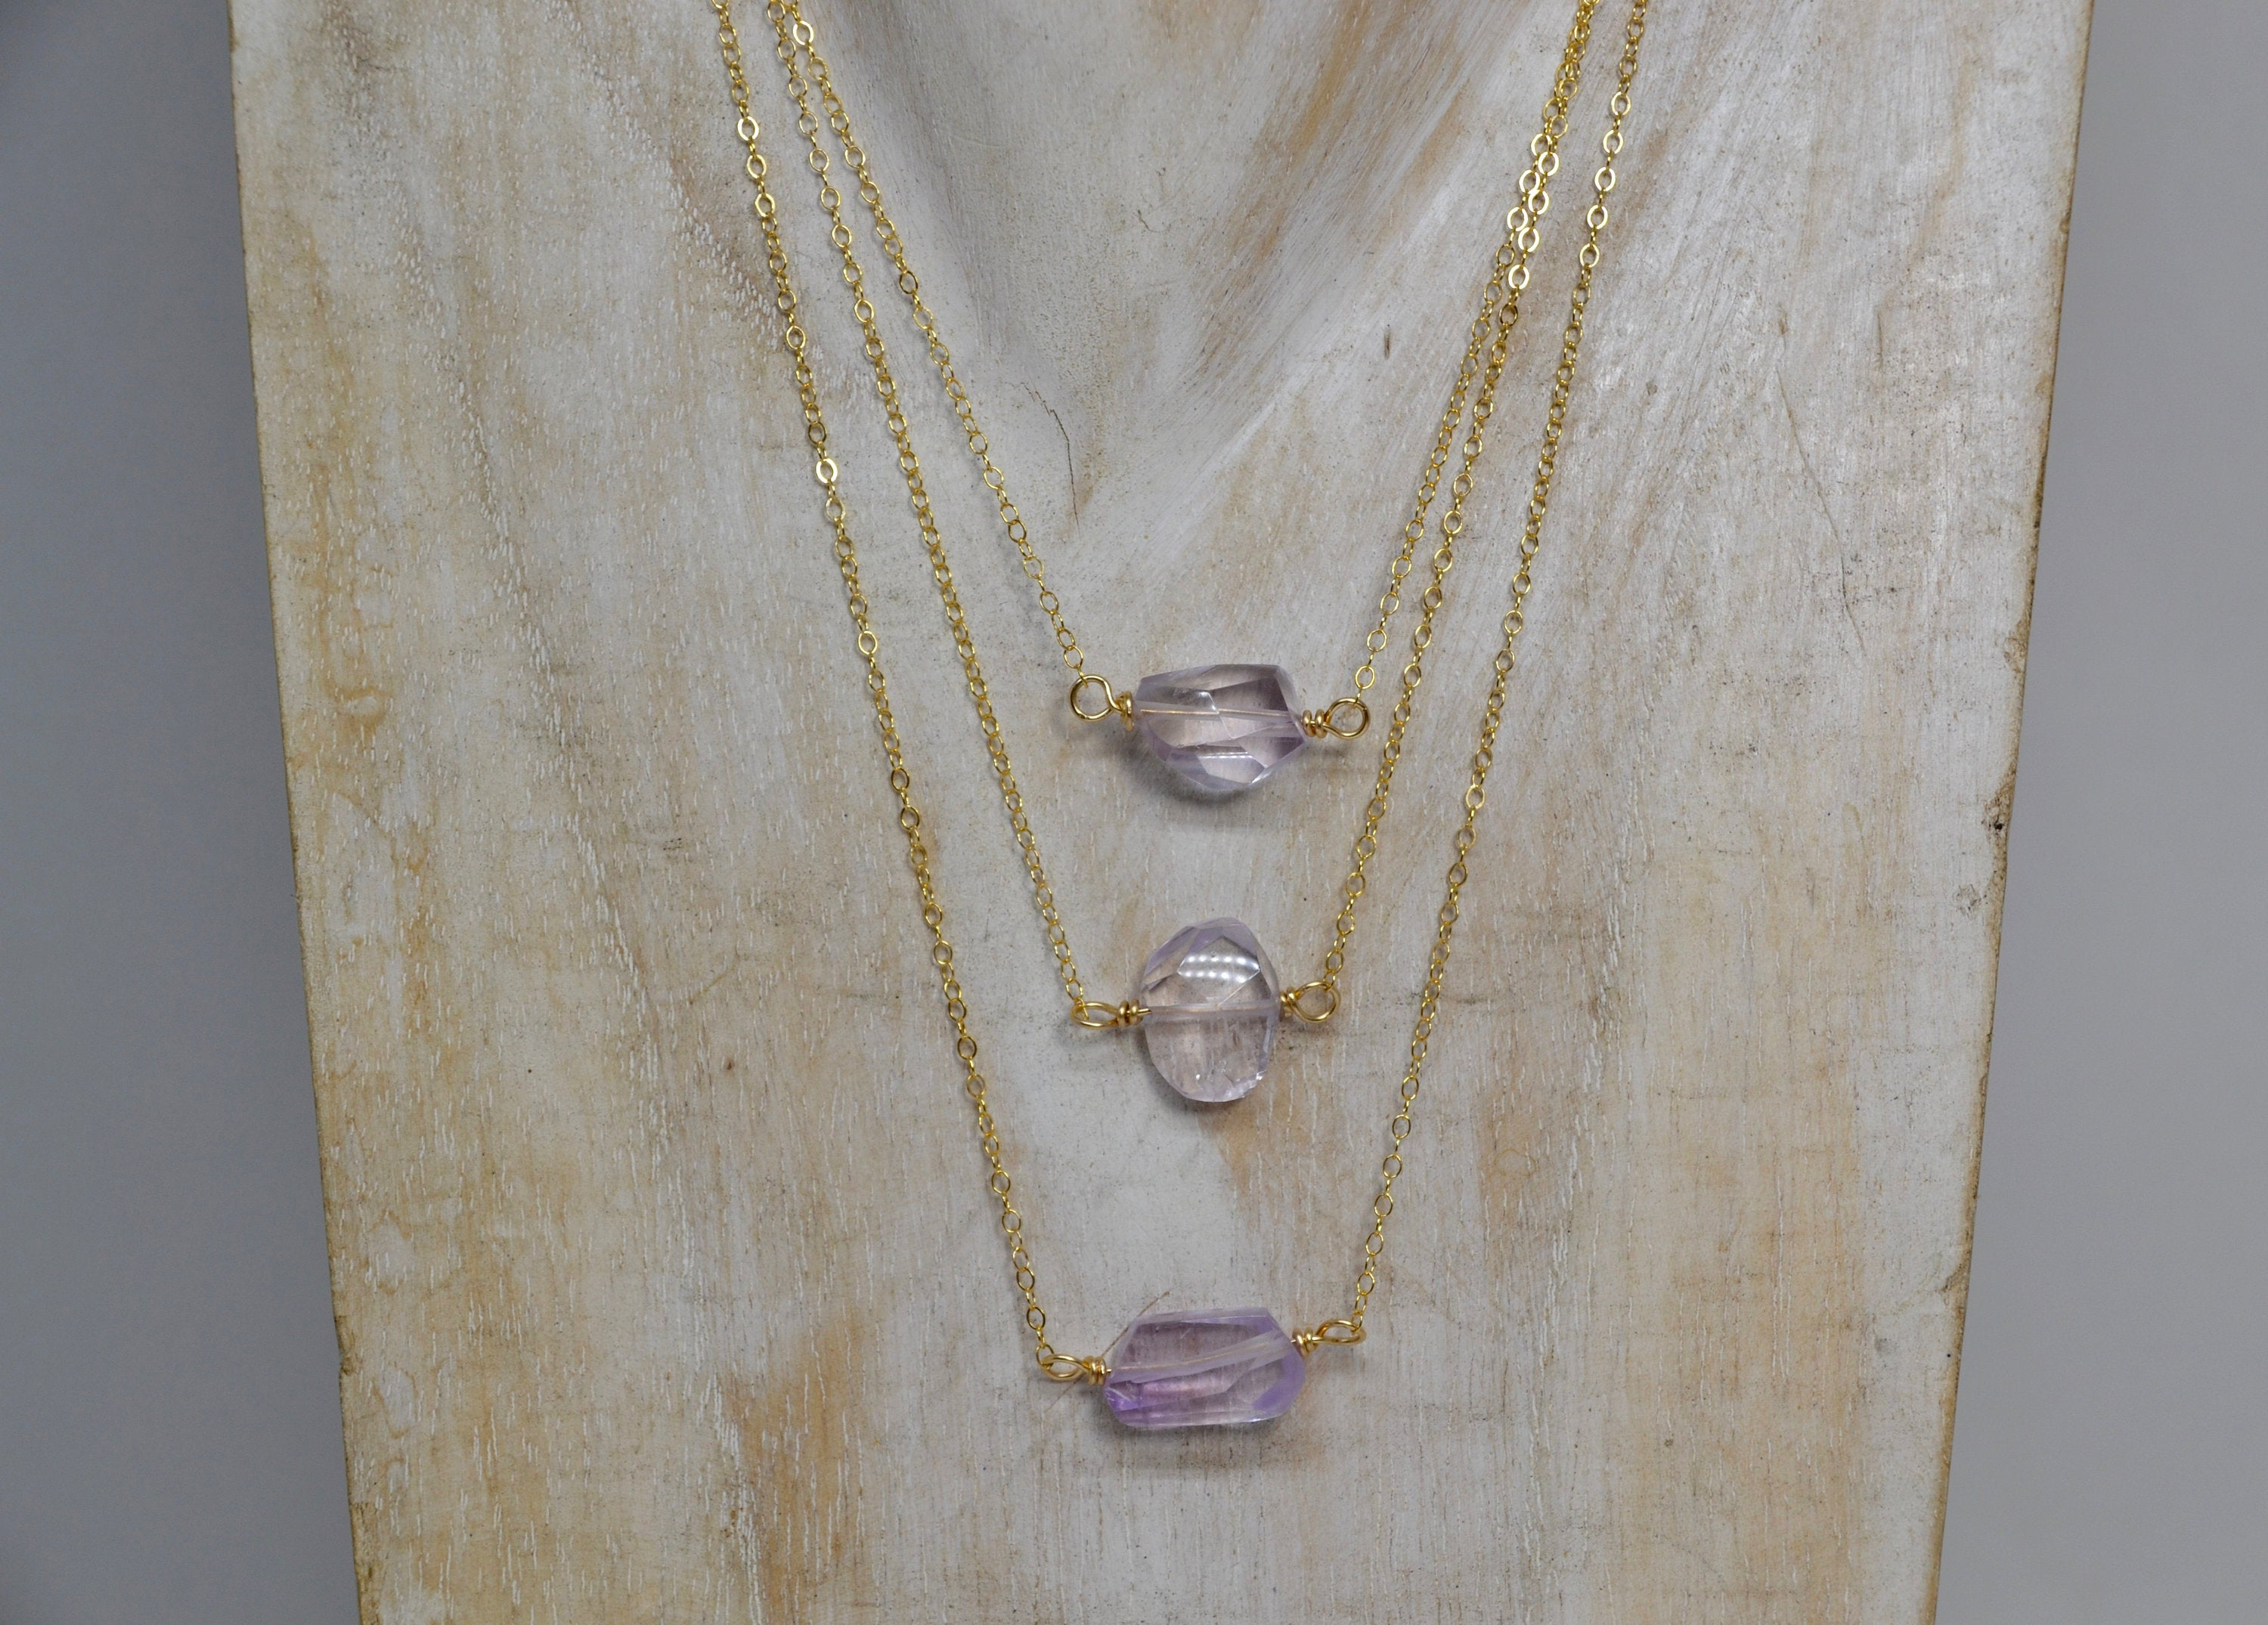 Amethyst Necklace 14k Gold Filled |Made to Order|